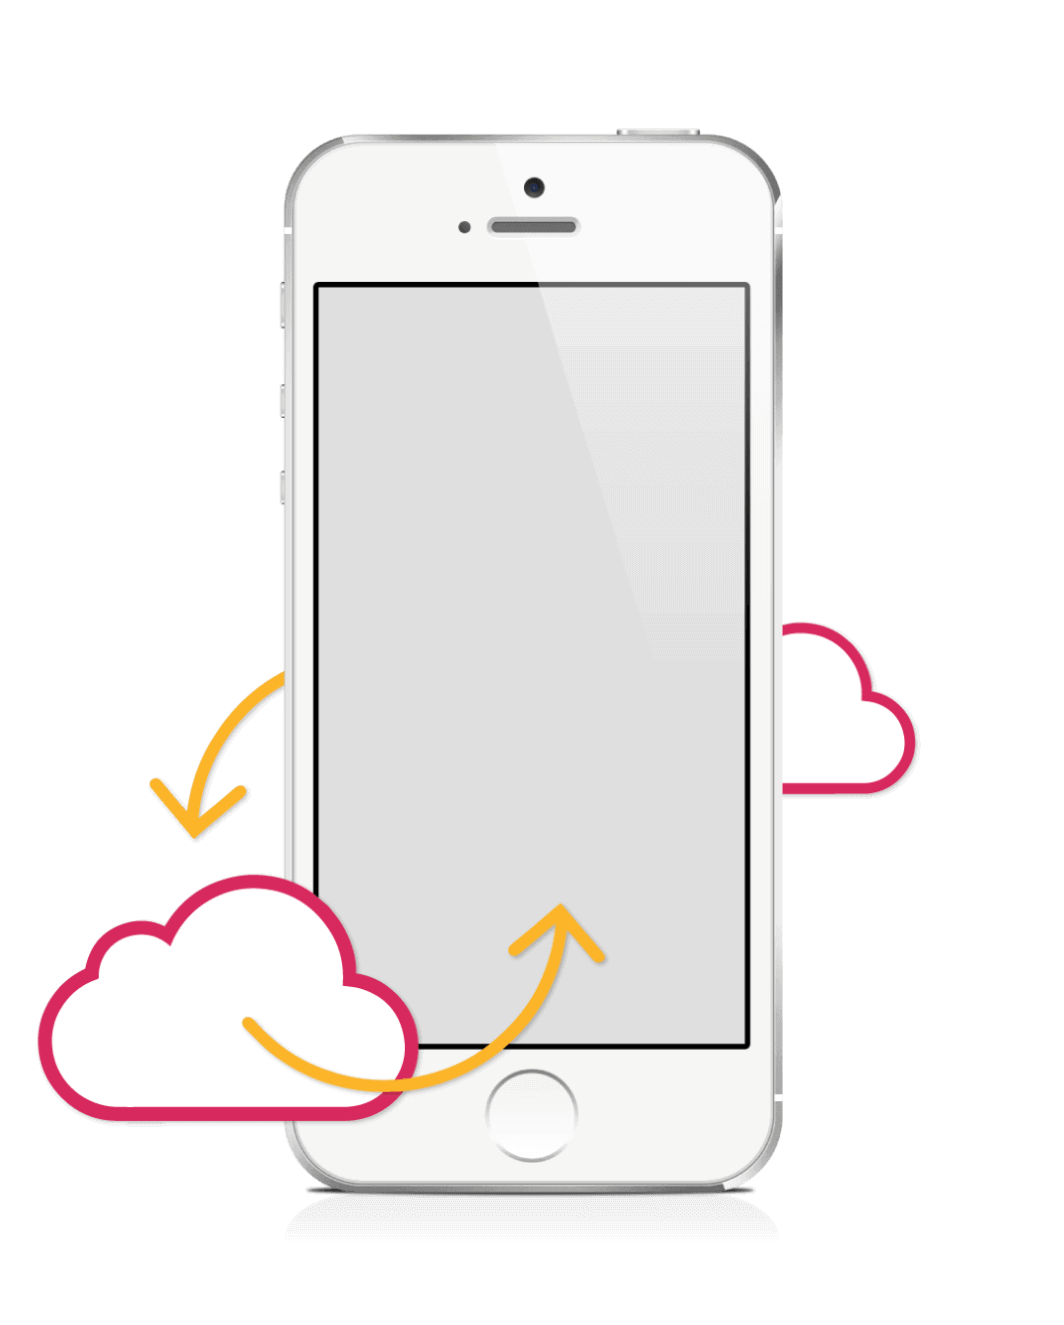 Sync Google Contacts with iCloud